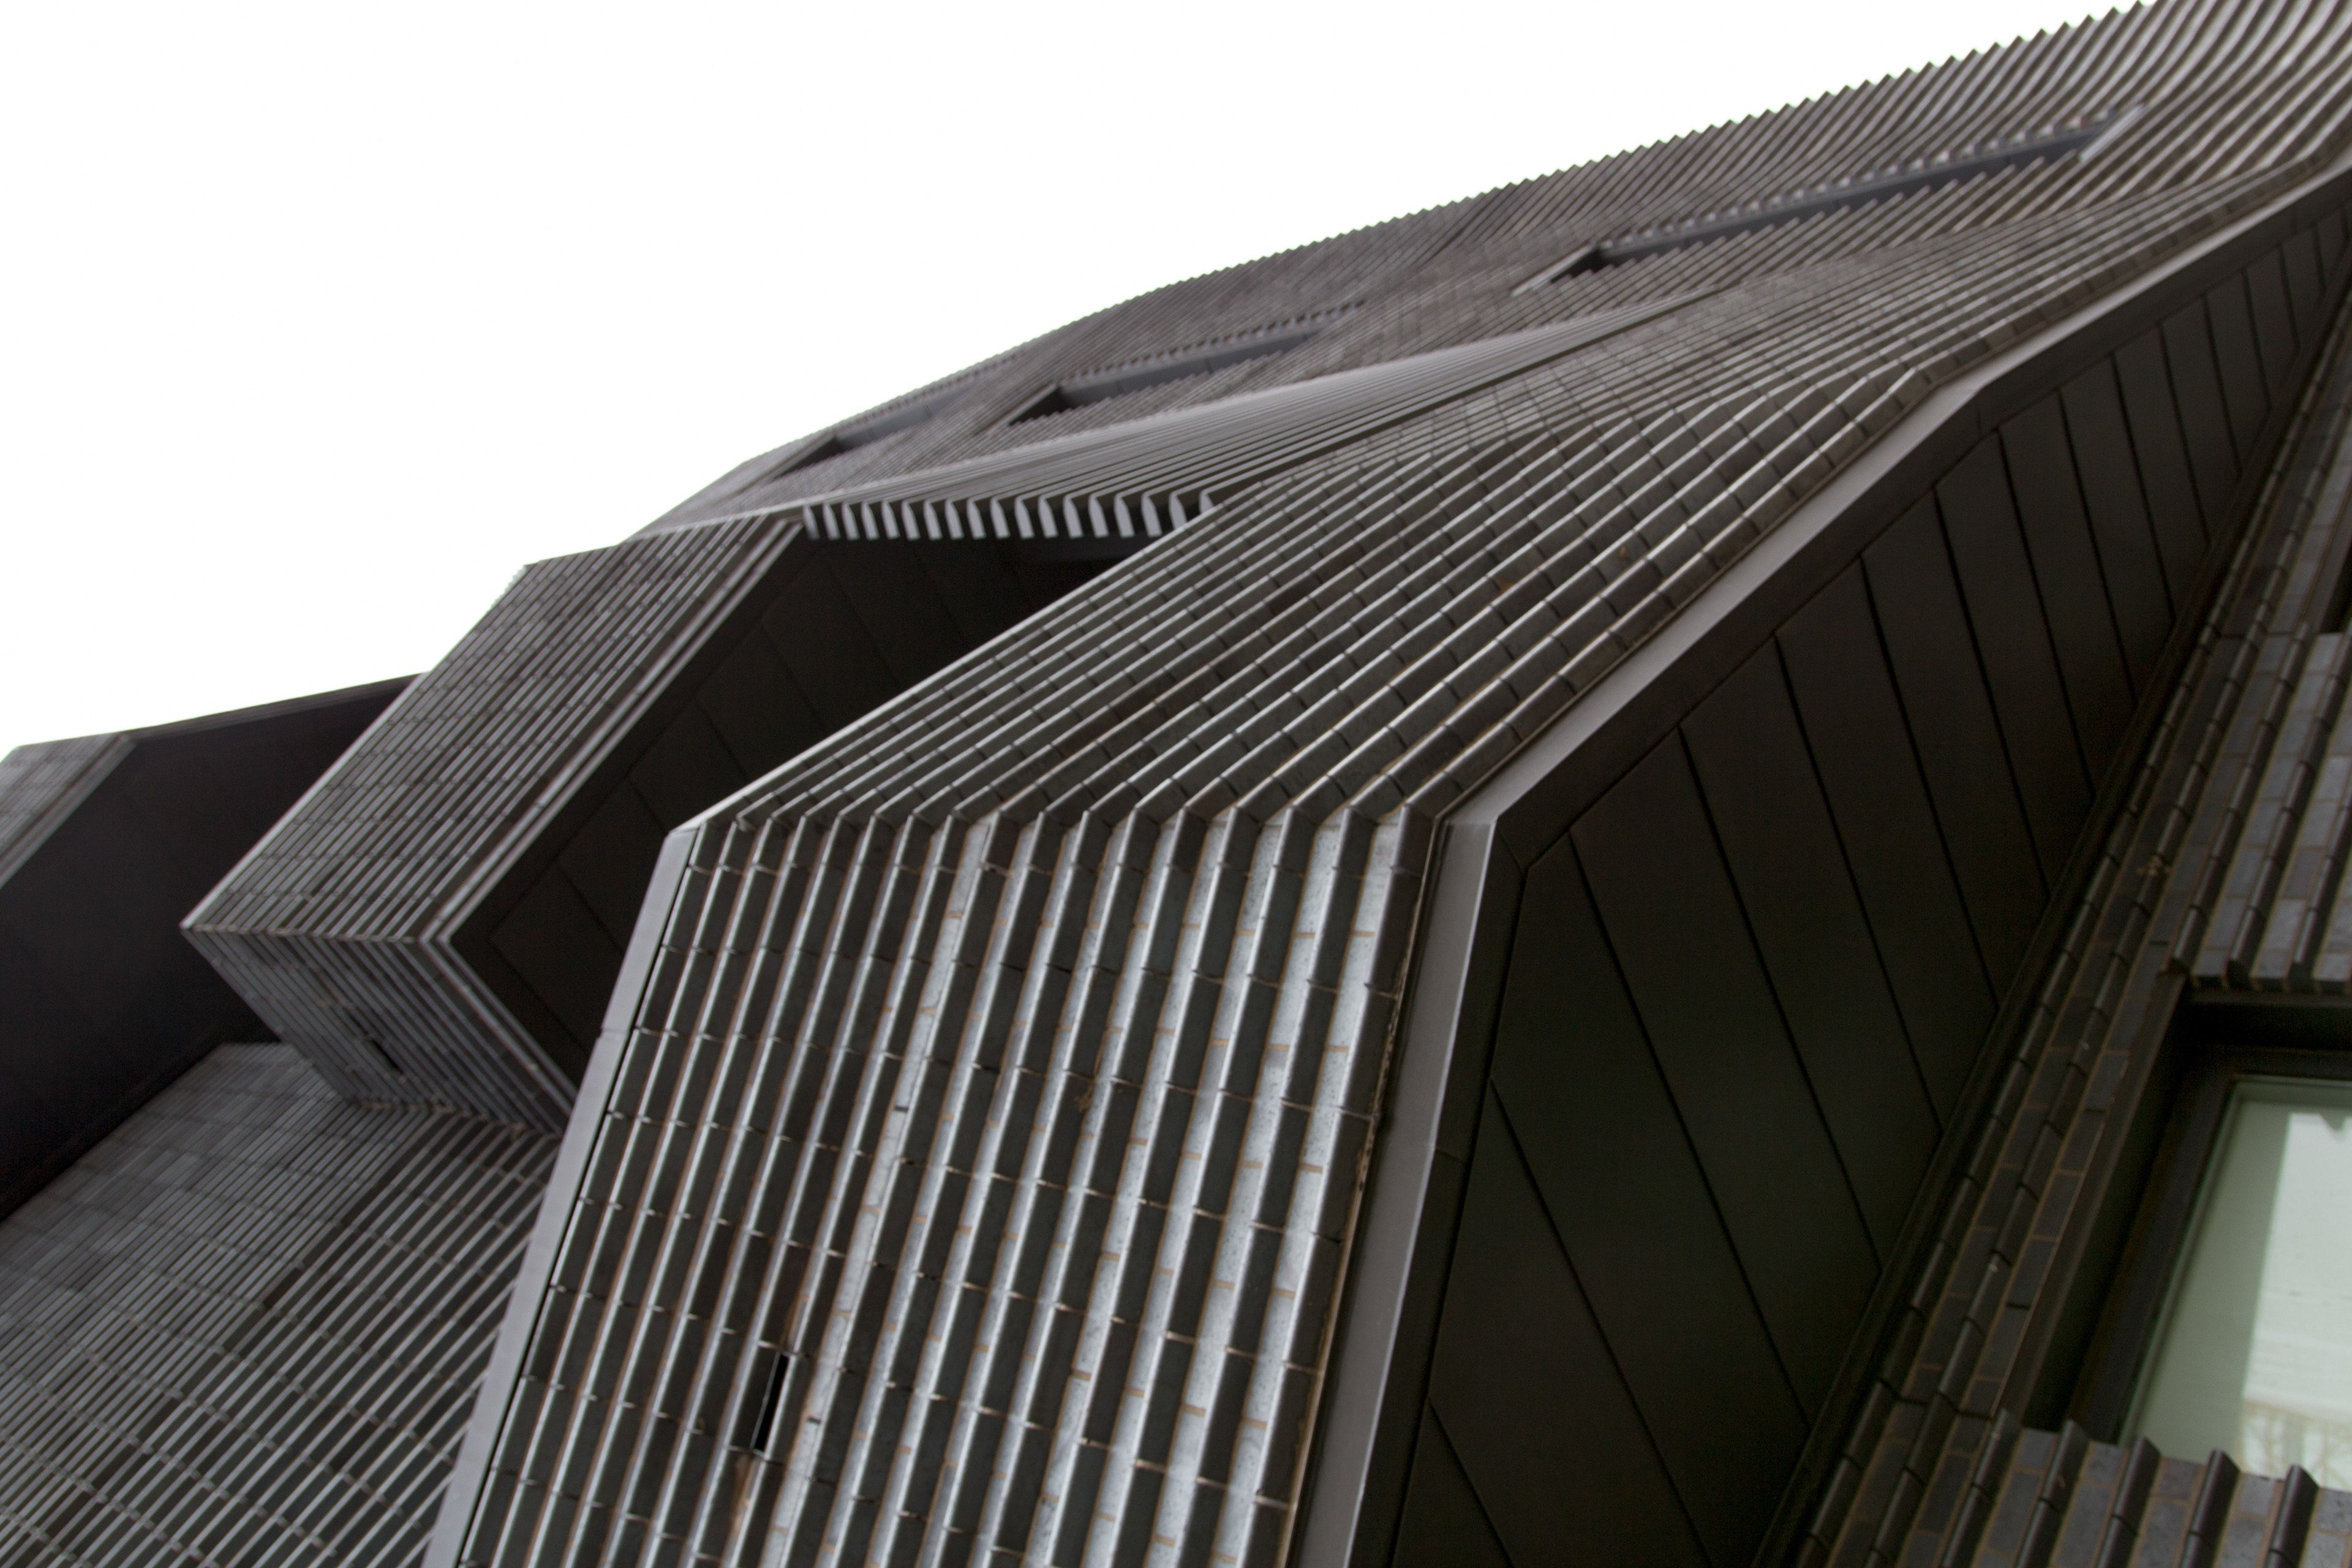 A modern black brick building, photographed at an angle that makes it unclear which way is up.